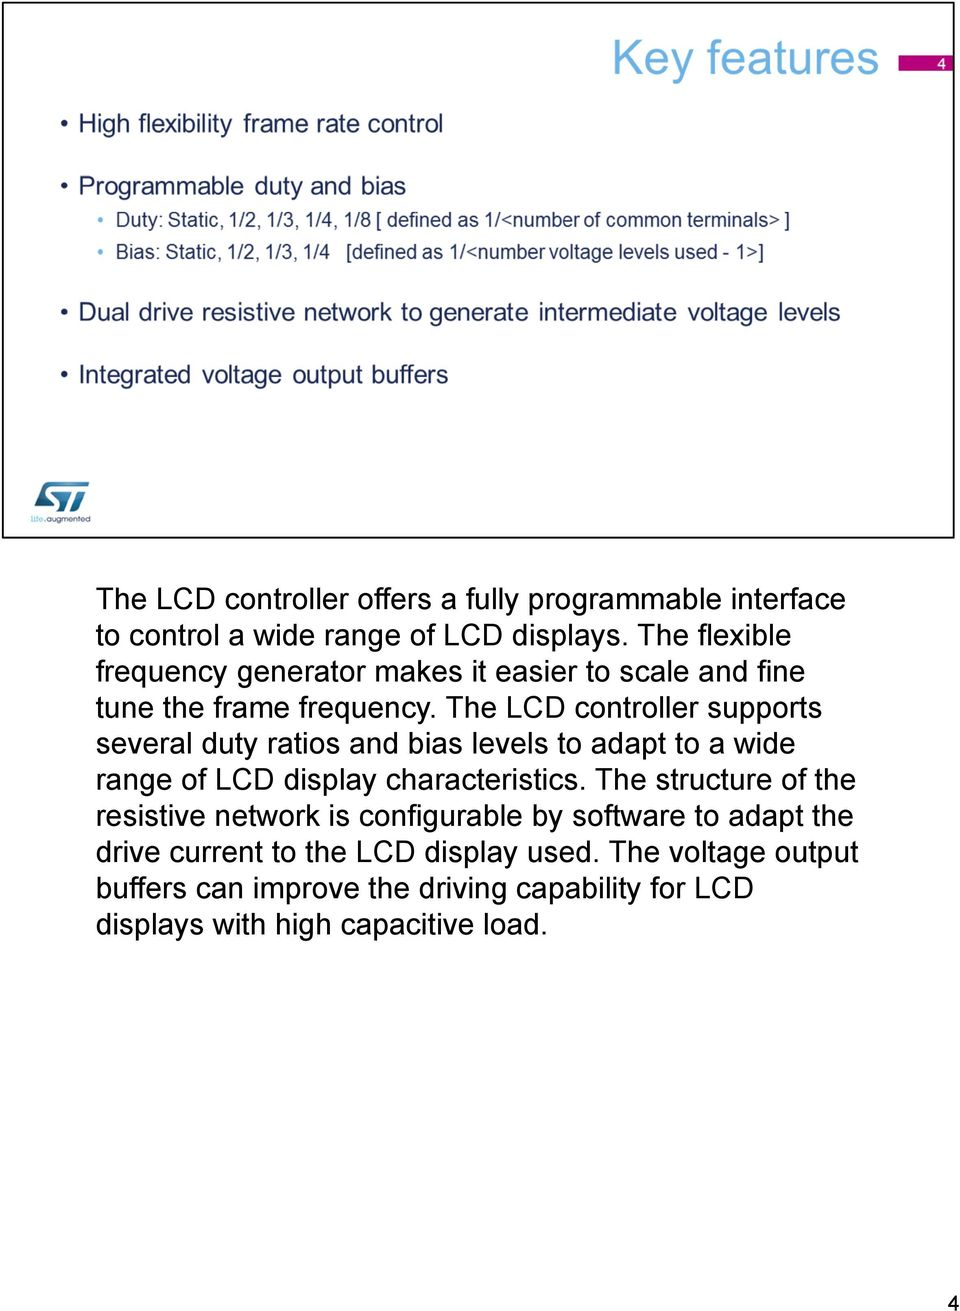 The LCD controller supports several duty ratios and bias levels to adapt to a wide range of LCD display characteristics.